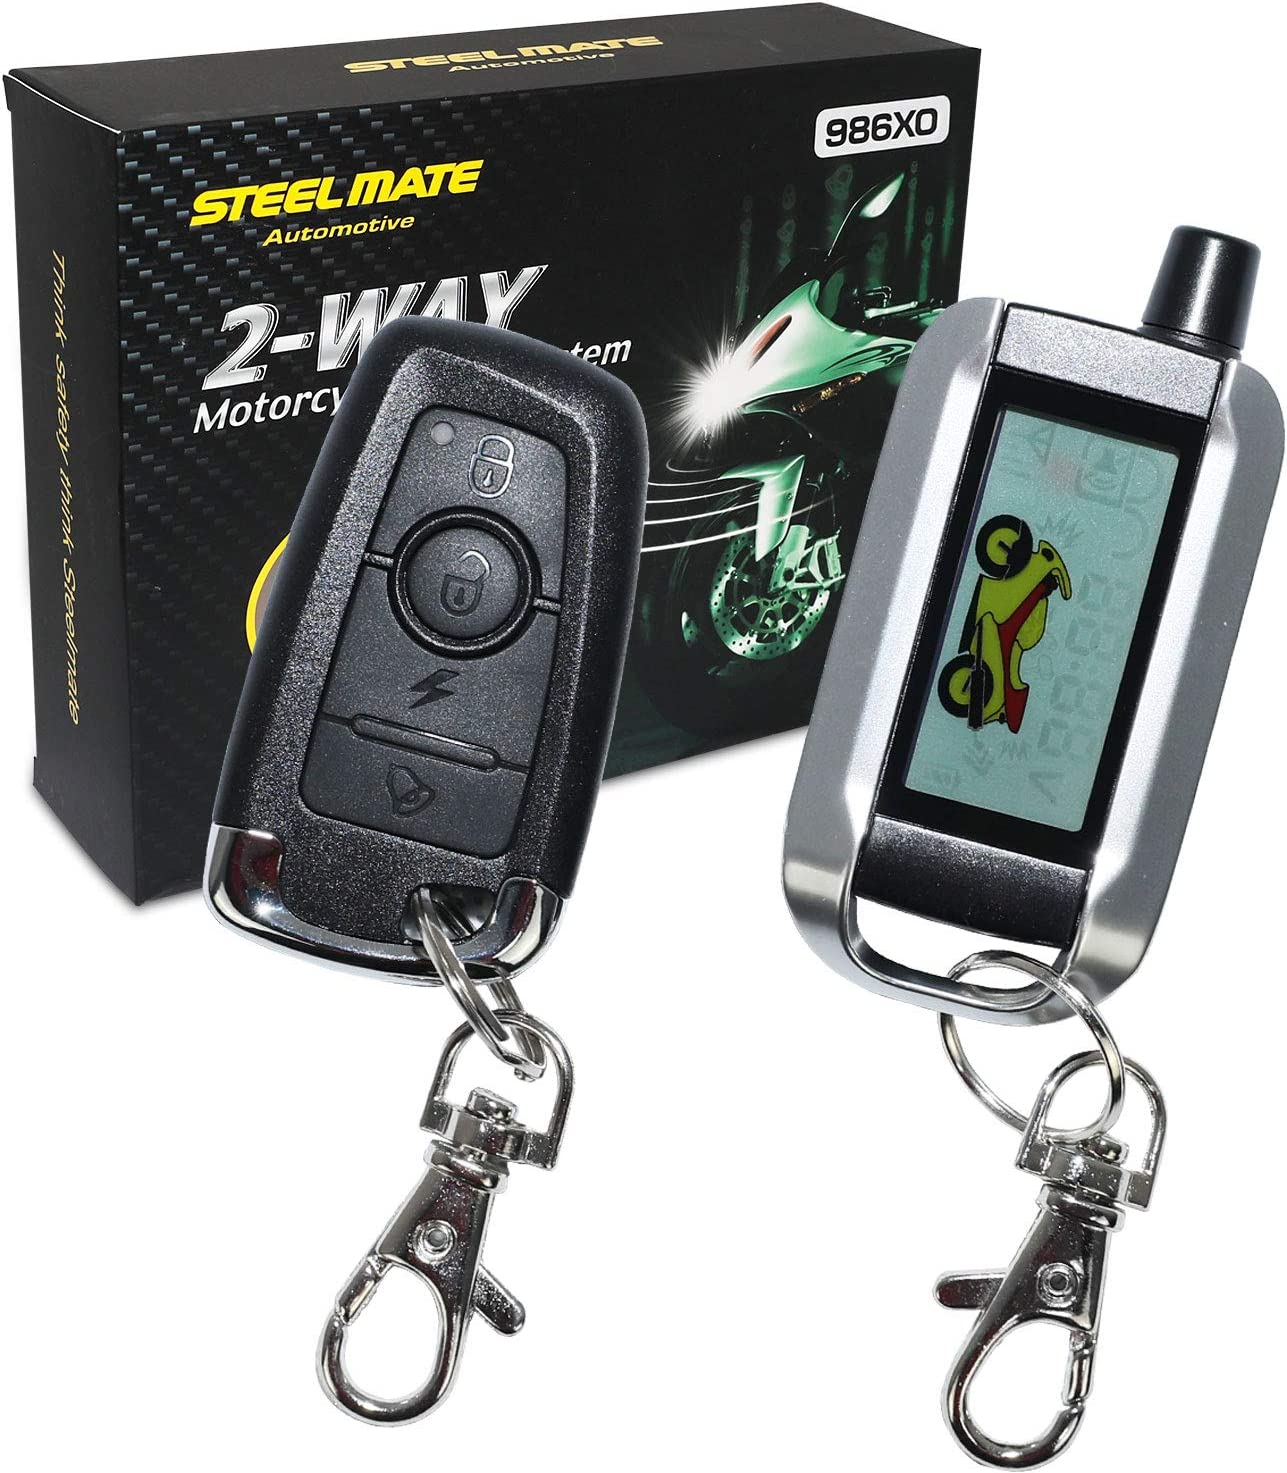 STEEL MATE 2-Way Motorcycle Alarm System 986XO with Remote Engine Start